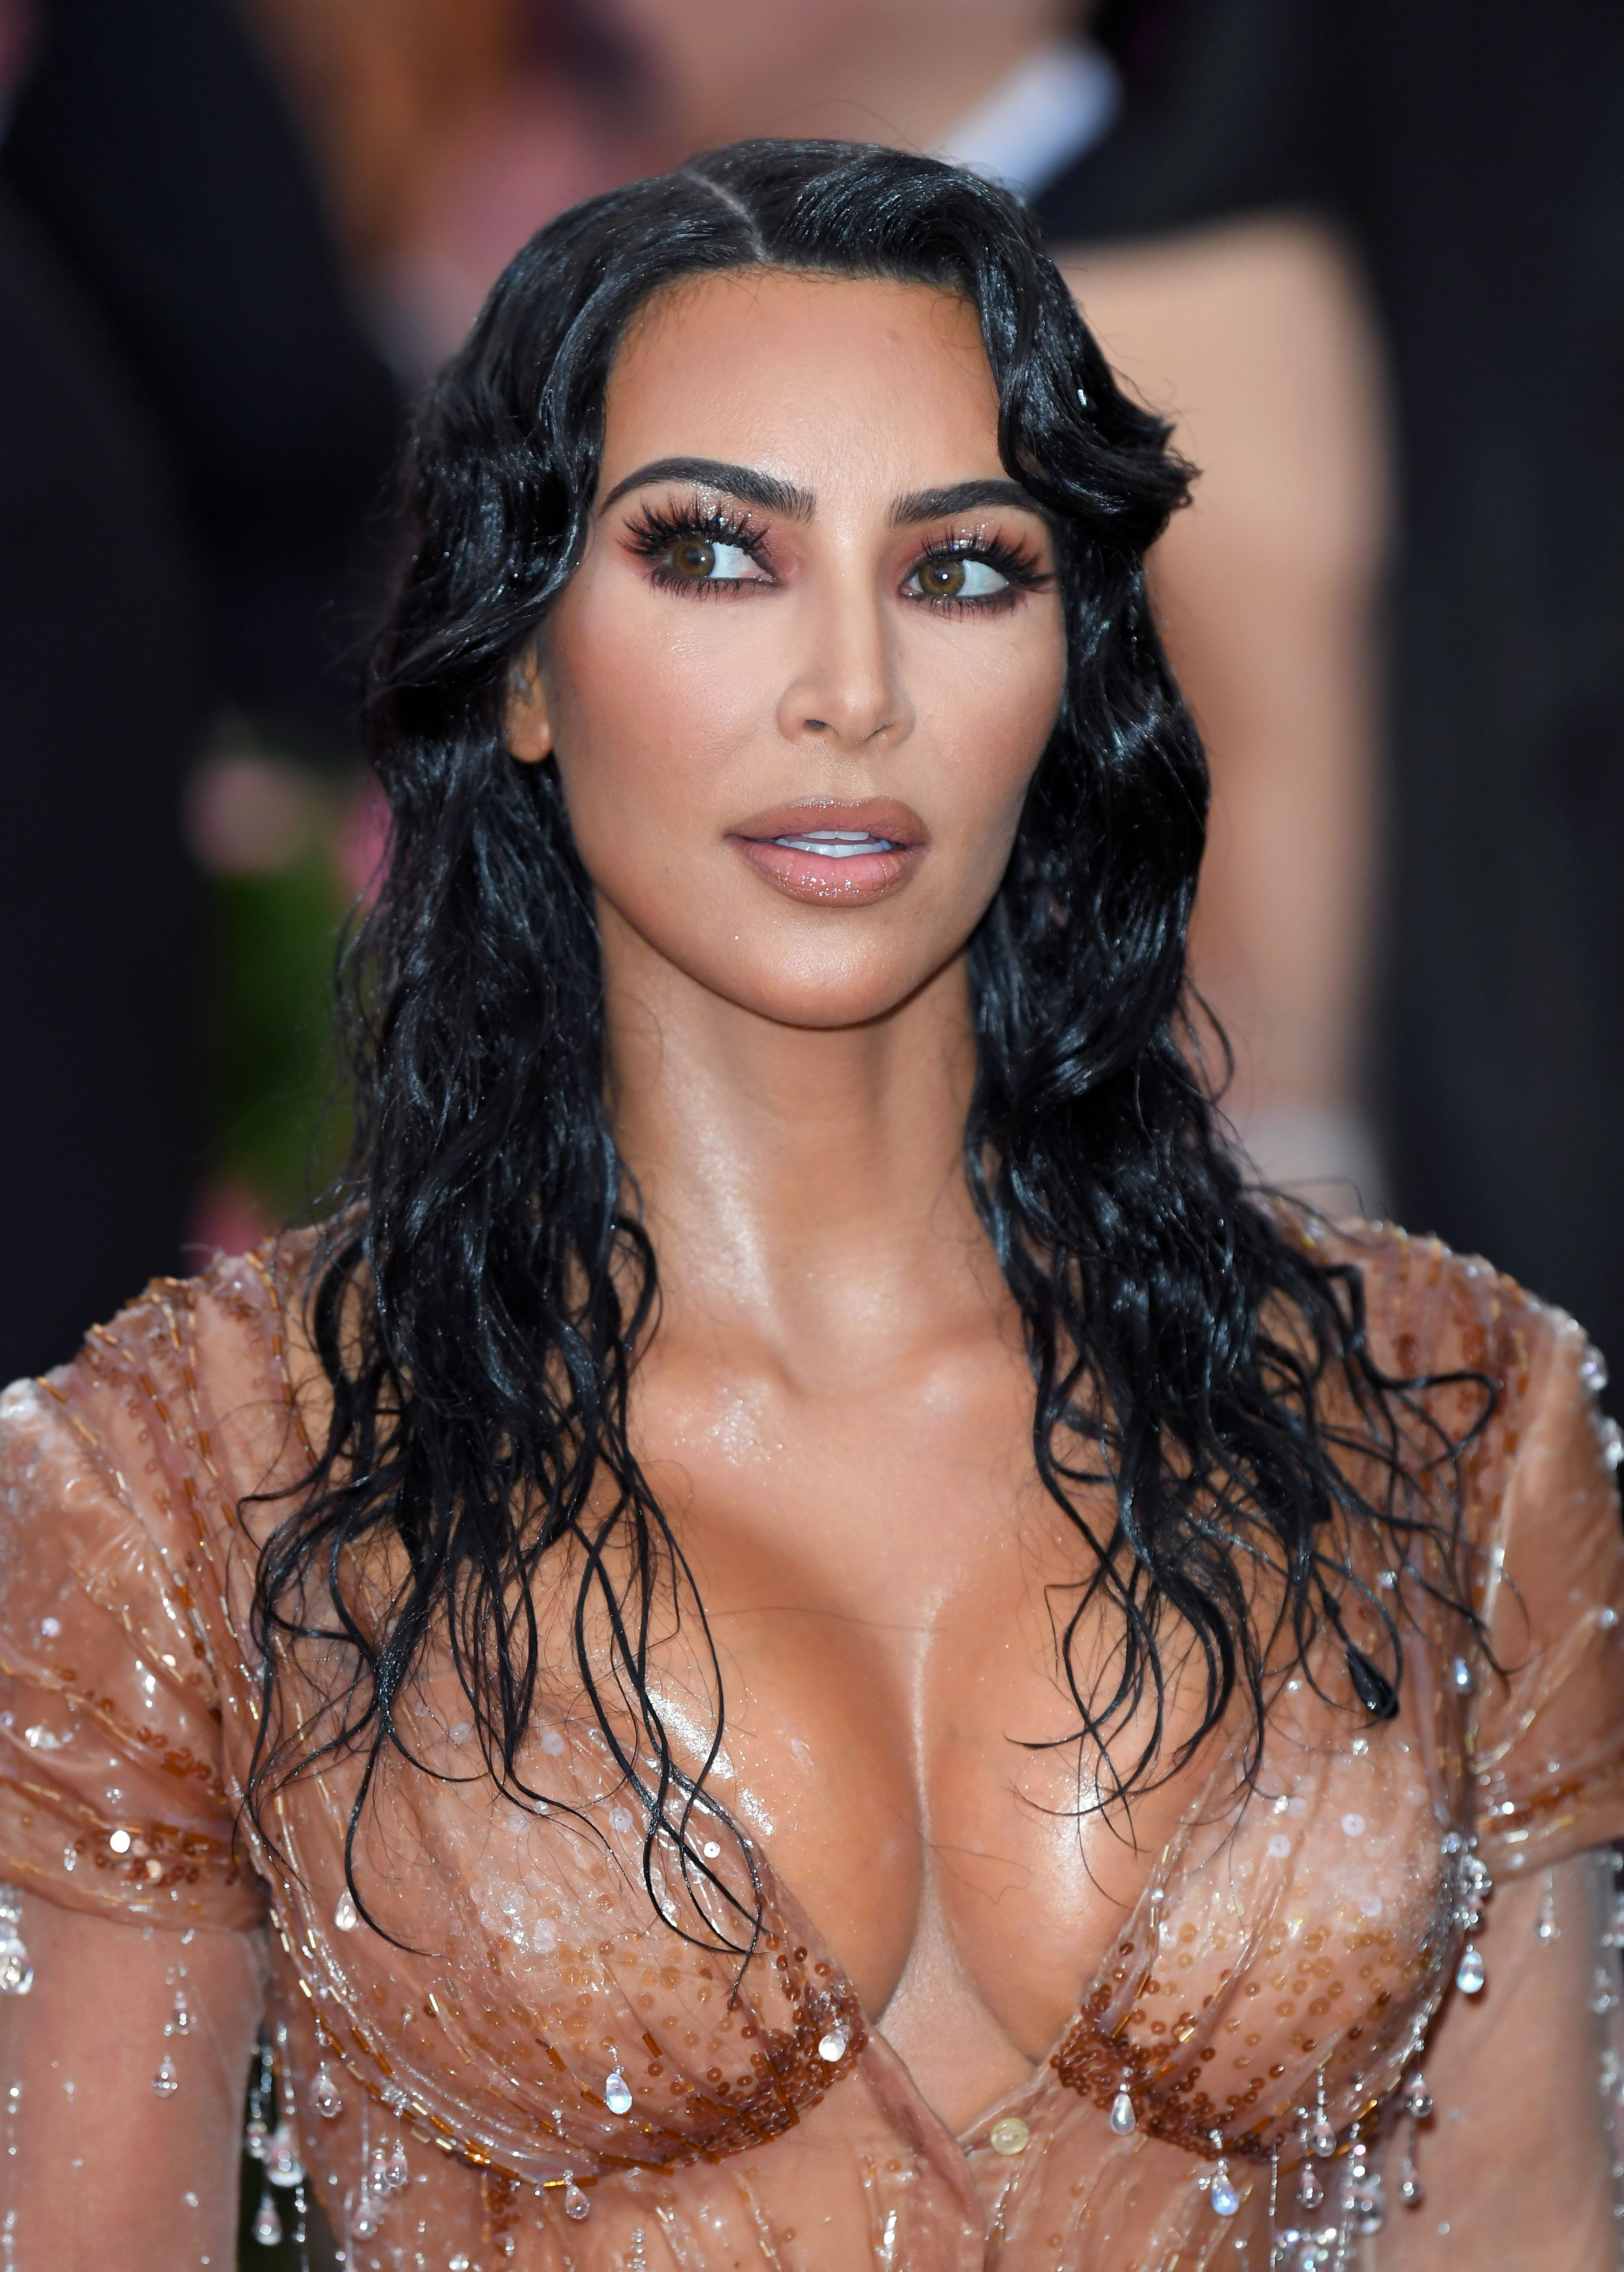 Kim Kardashian West at the 2019 Met Gala in New York | Source: Getty Images